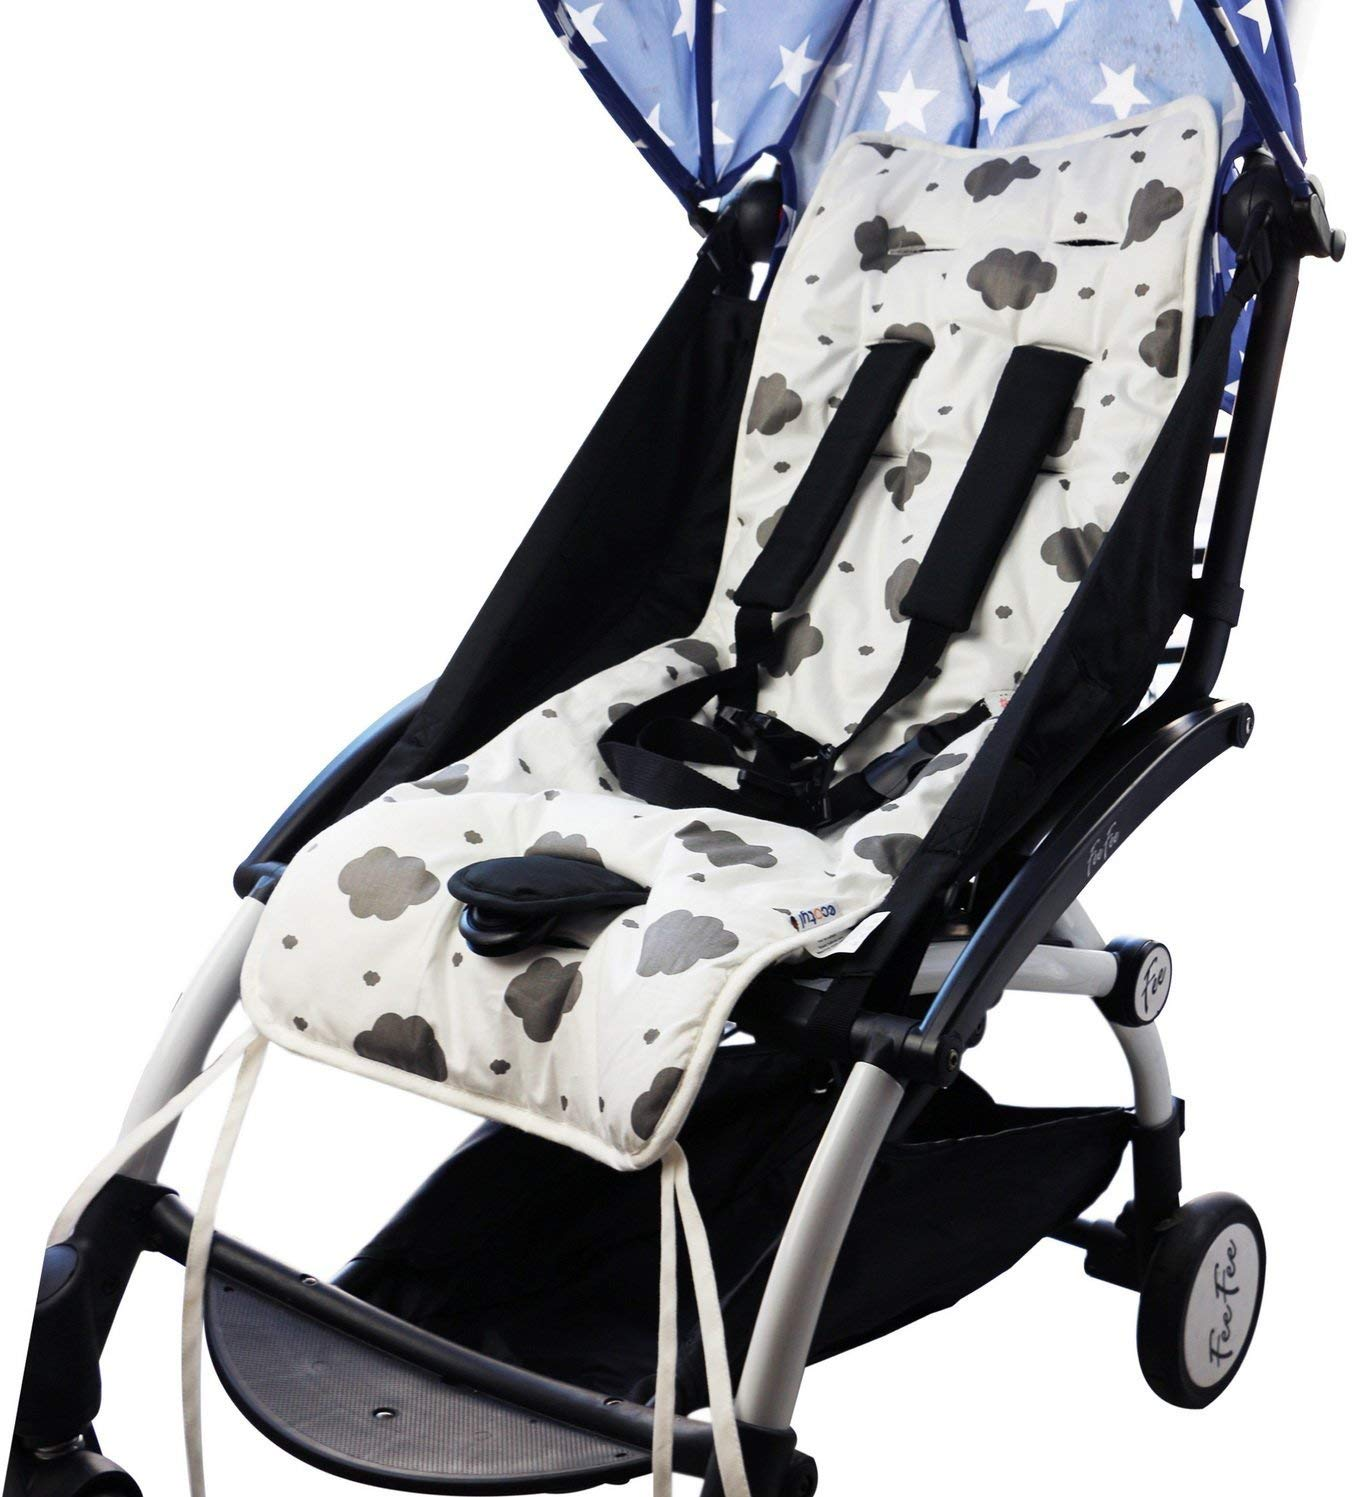 Quick and Easy Install Jogger Reversible Pure Cotton Universal Baby Seat Liner for Stroller Car Seat Bouncer Supports Newborns Infants Thick Cushion and Toddlers